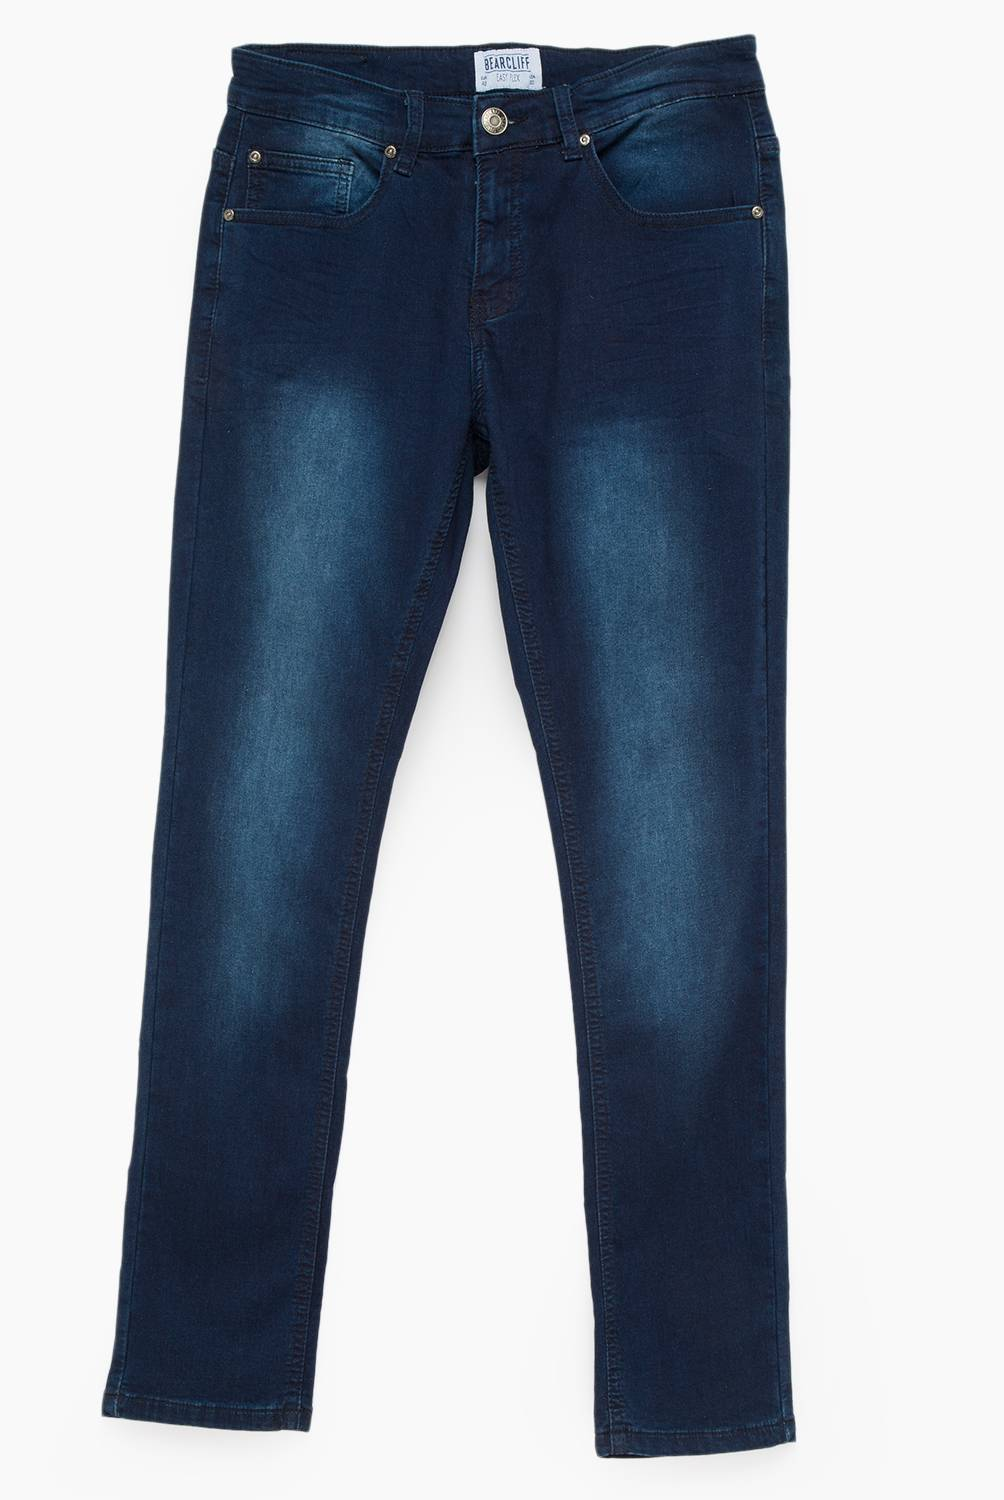 Bearcliff - Jeans Casual Skinny Fit